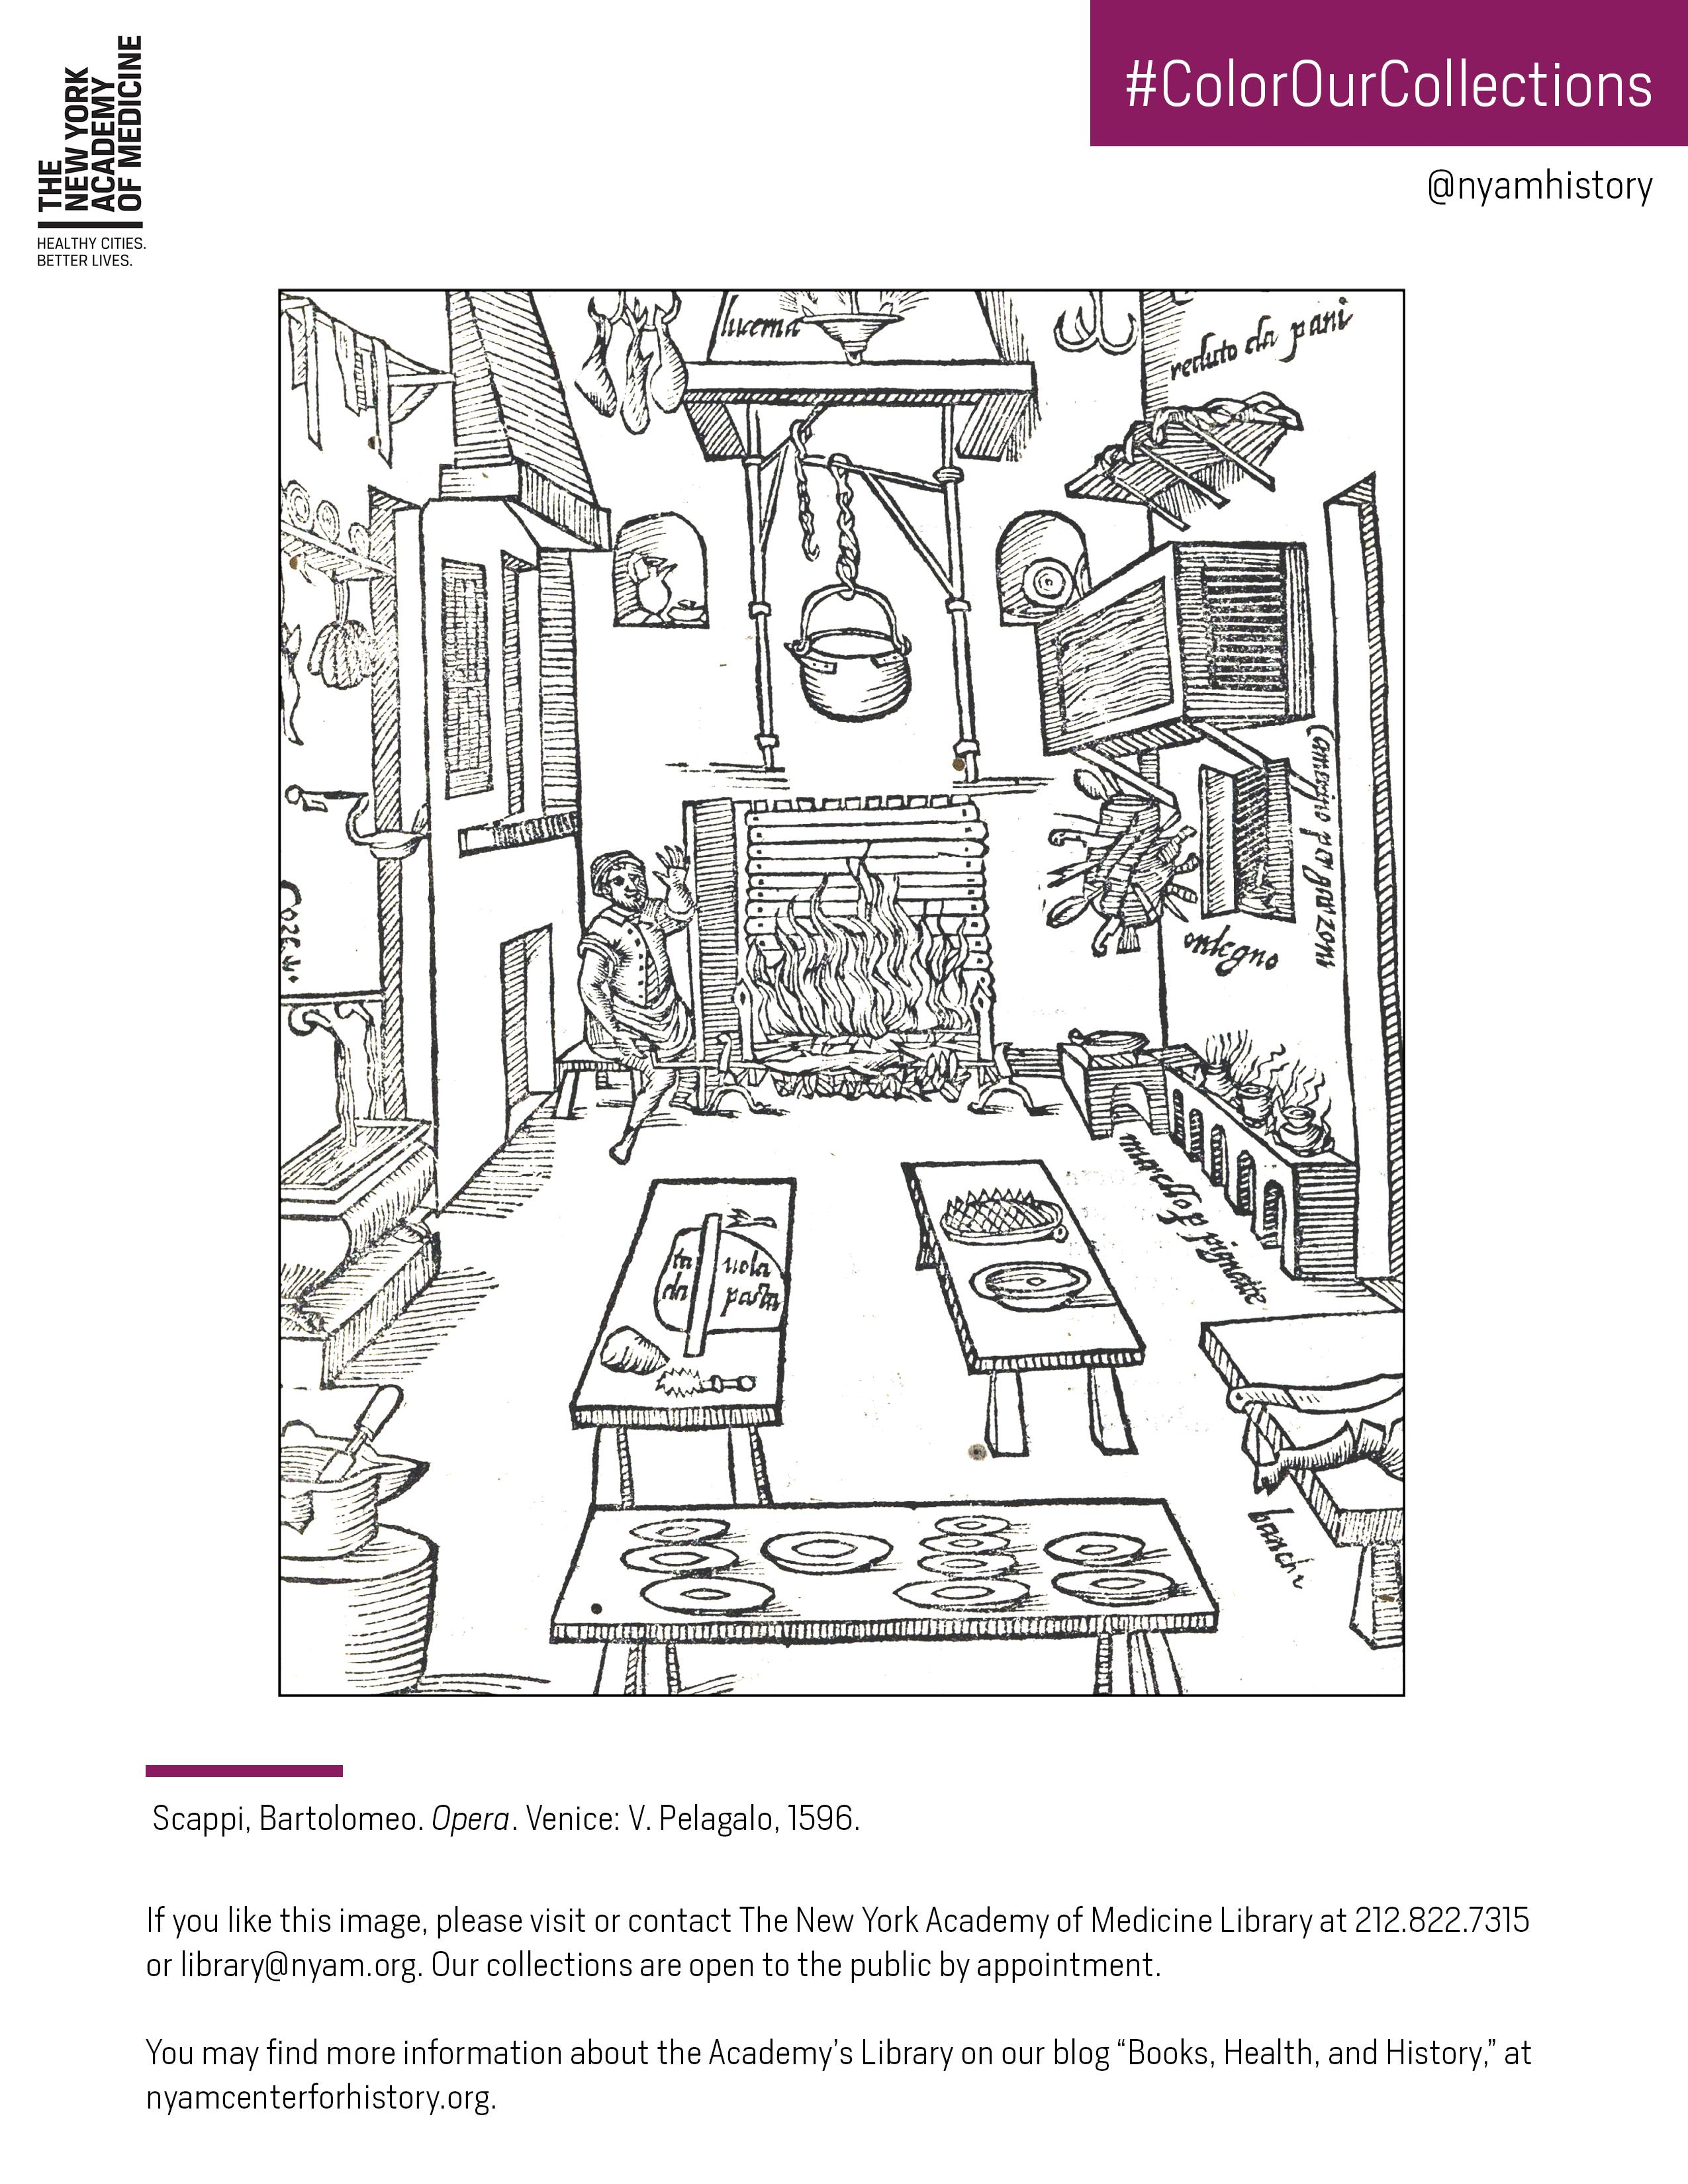 Colorourcollections Day 2